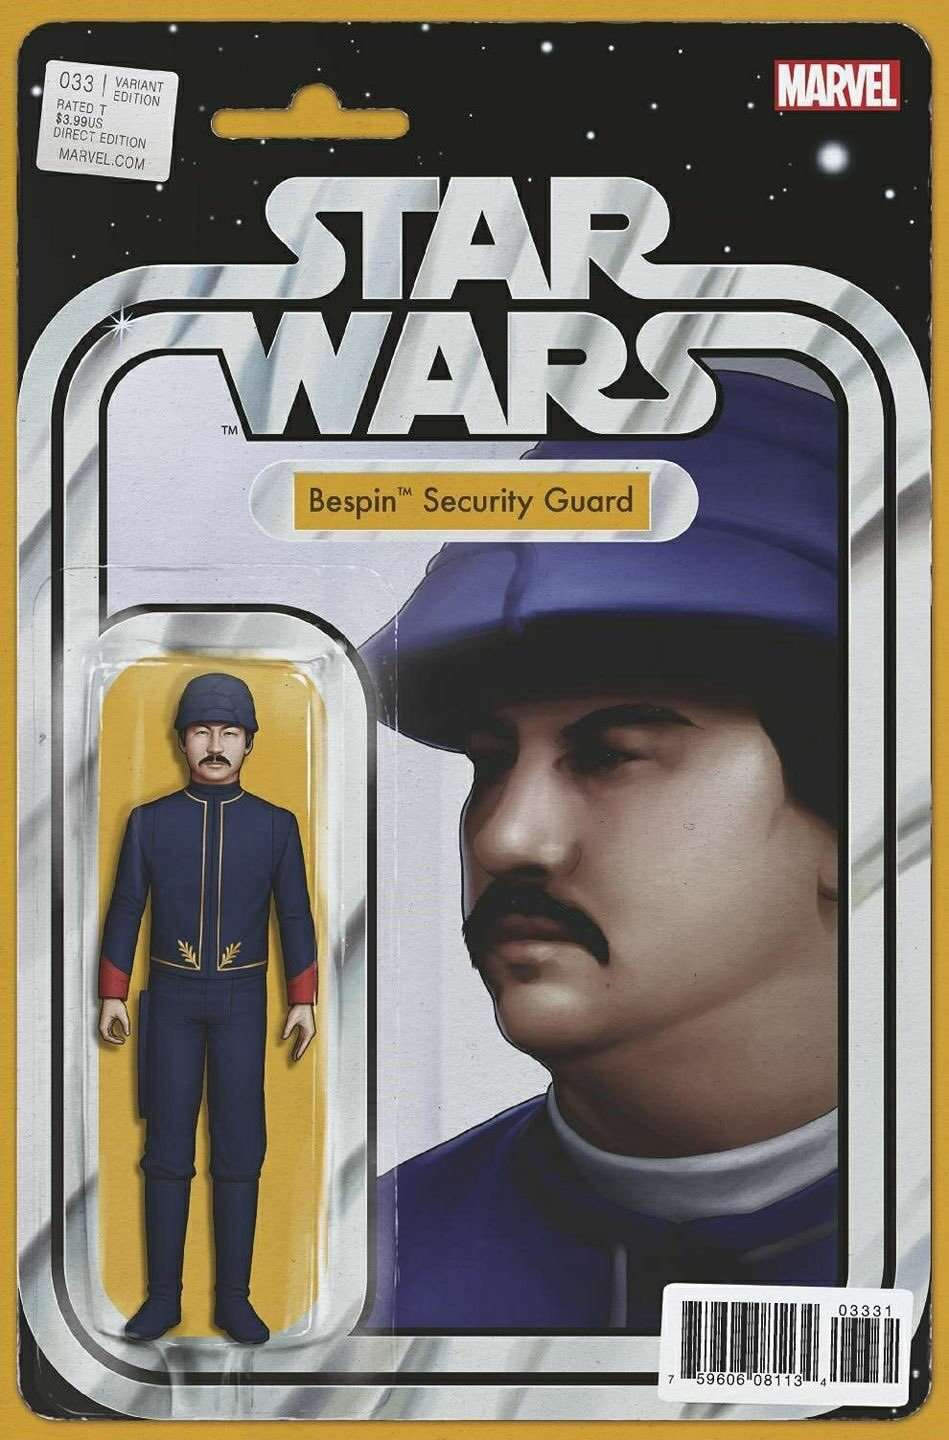 Star Wars #33 Action Figure Variant - Bespin Security Guard